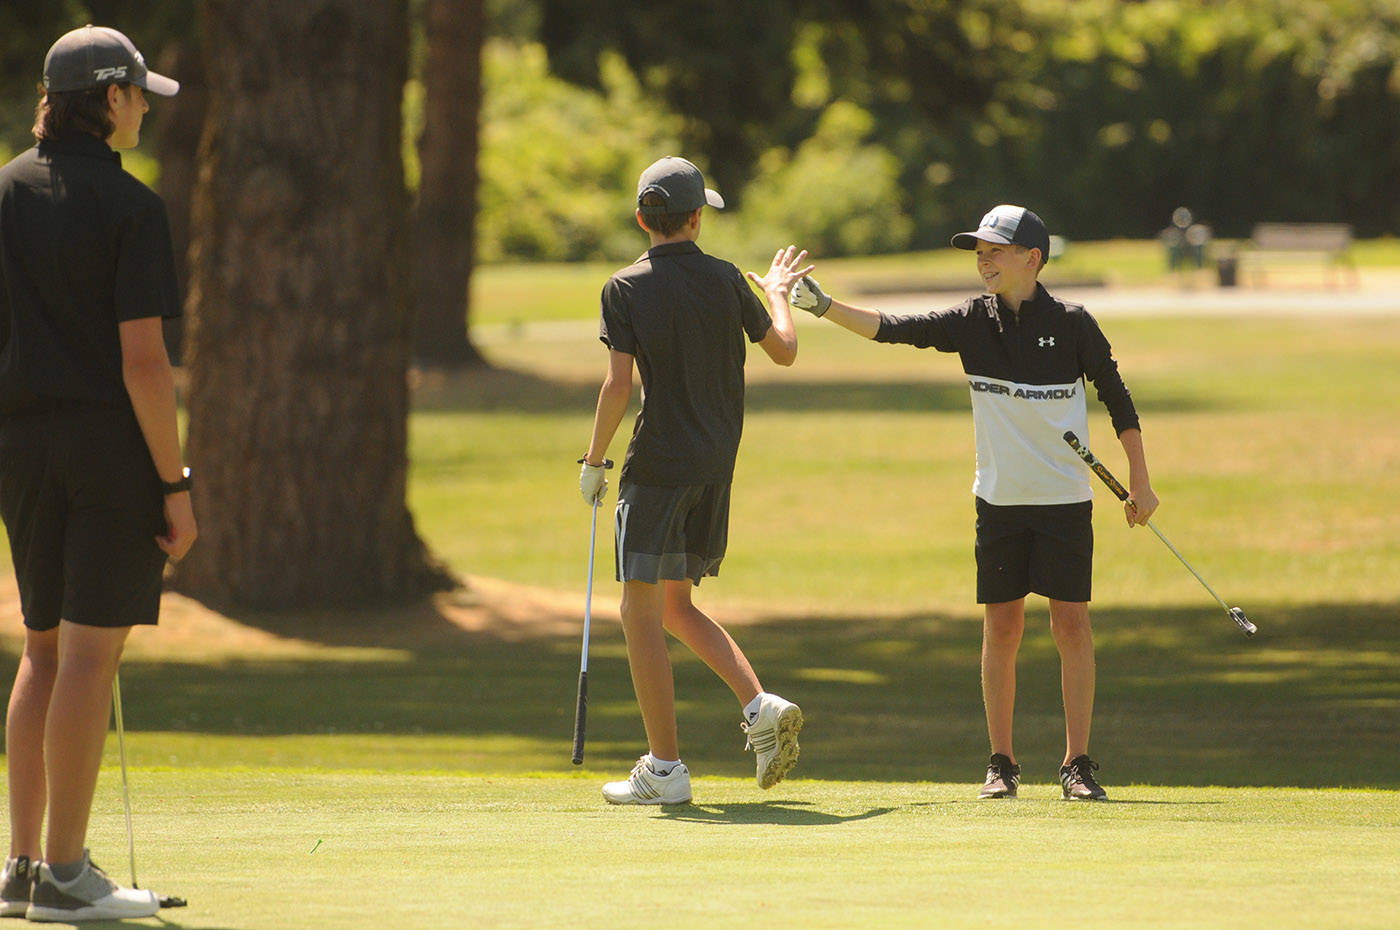 Owen Hopfner (right) congratulates Nathan Devisser (both of Chilliwack) on his successful putt on the third green at Chilliwack Golf Club during the final round of the 2021 Optimist Fred Wellsby Junior Divot golf tournament on Thursday, July 15, 2021. (Jenna Hauck/ Chilliwack Progress)